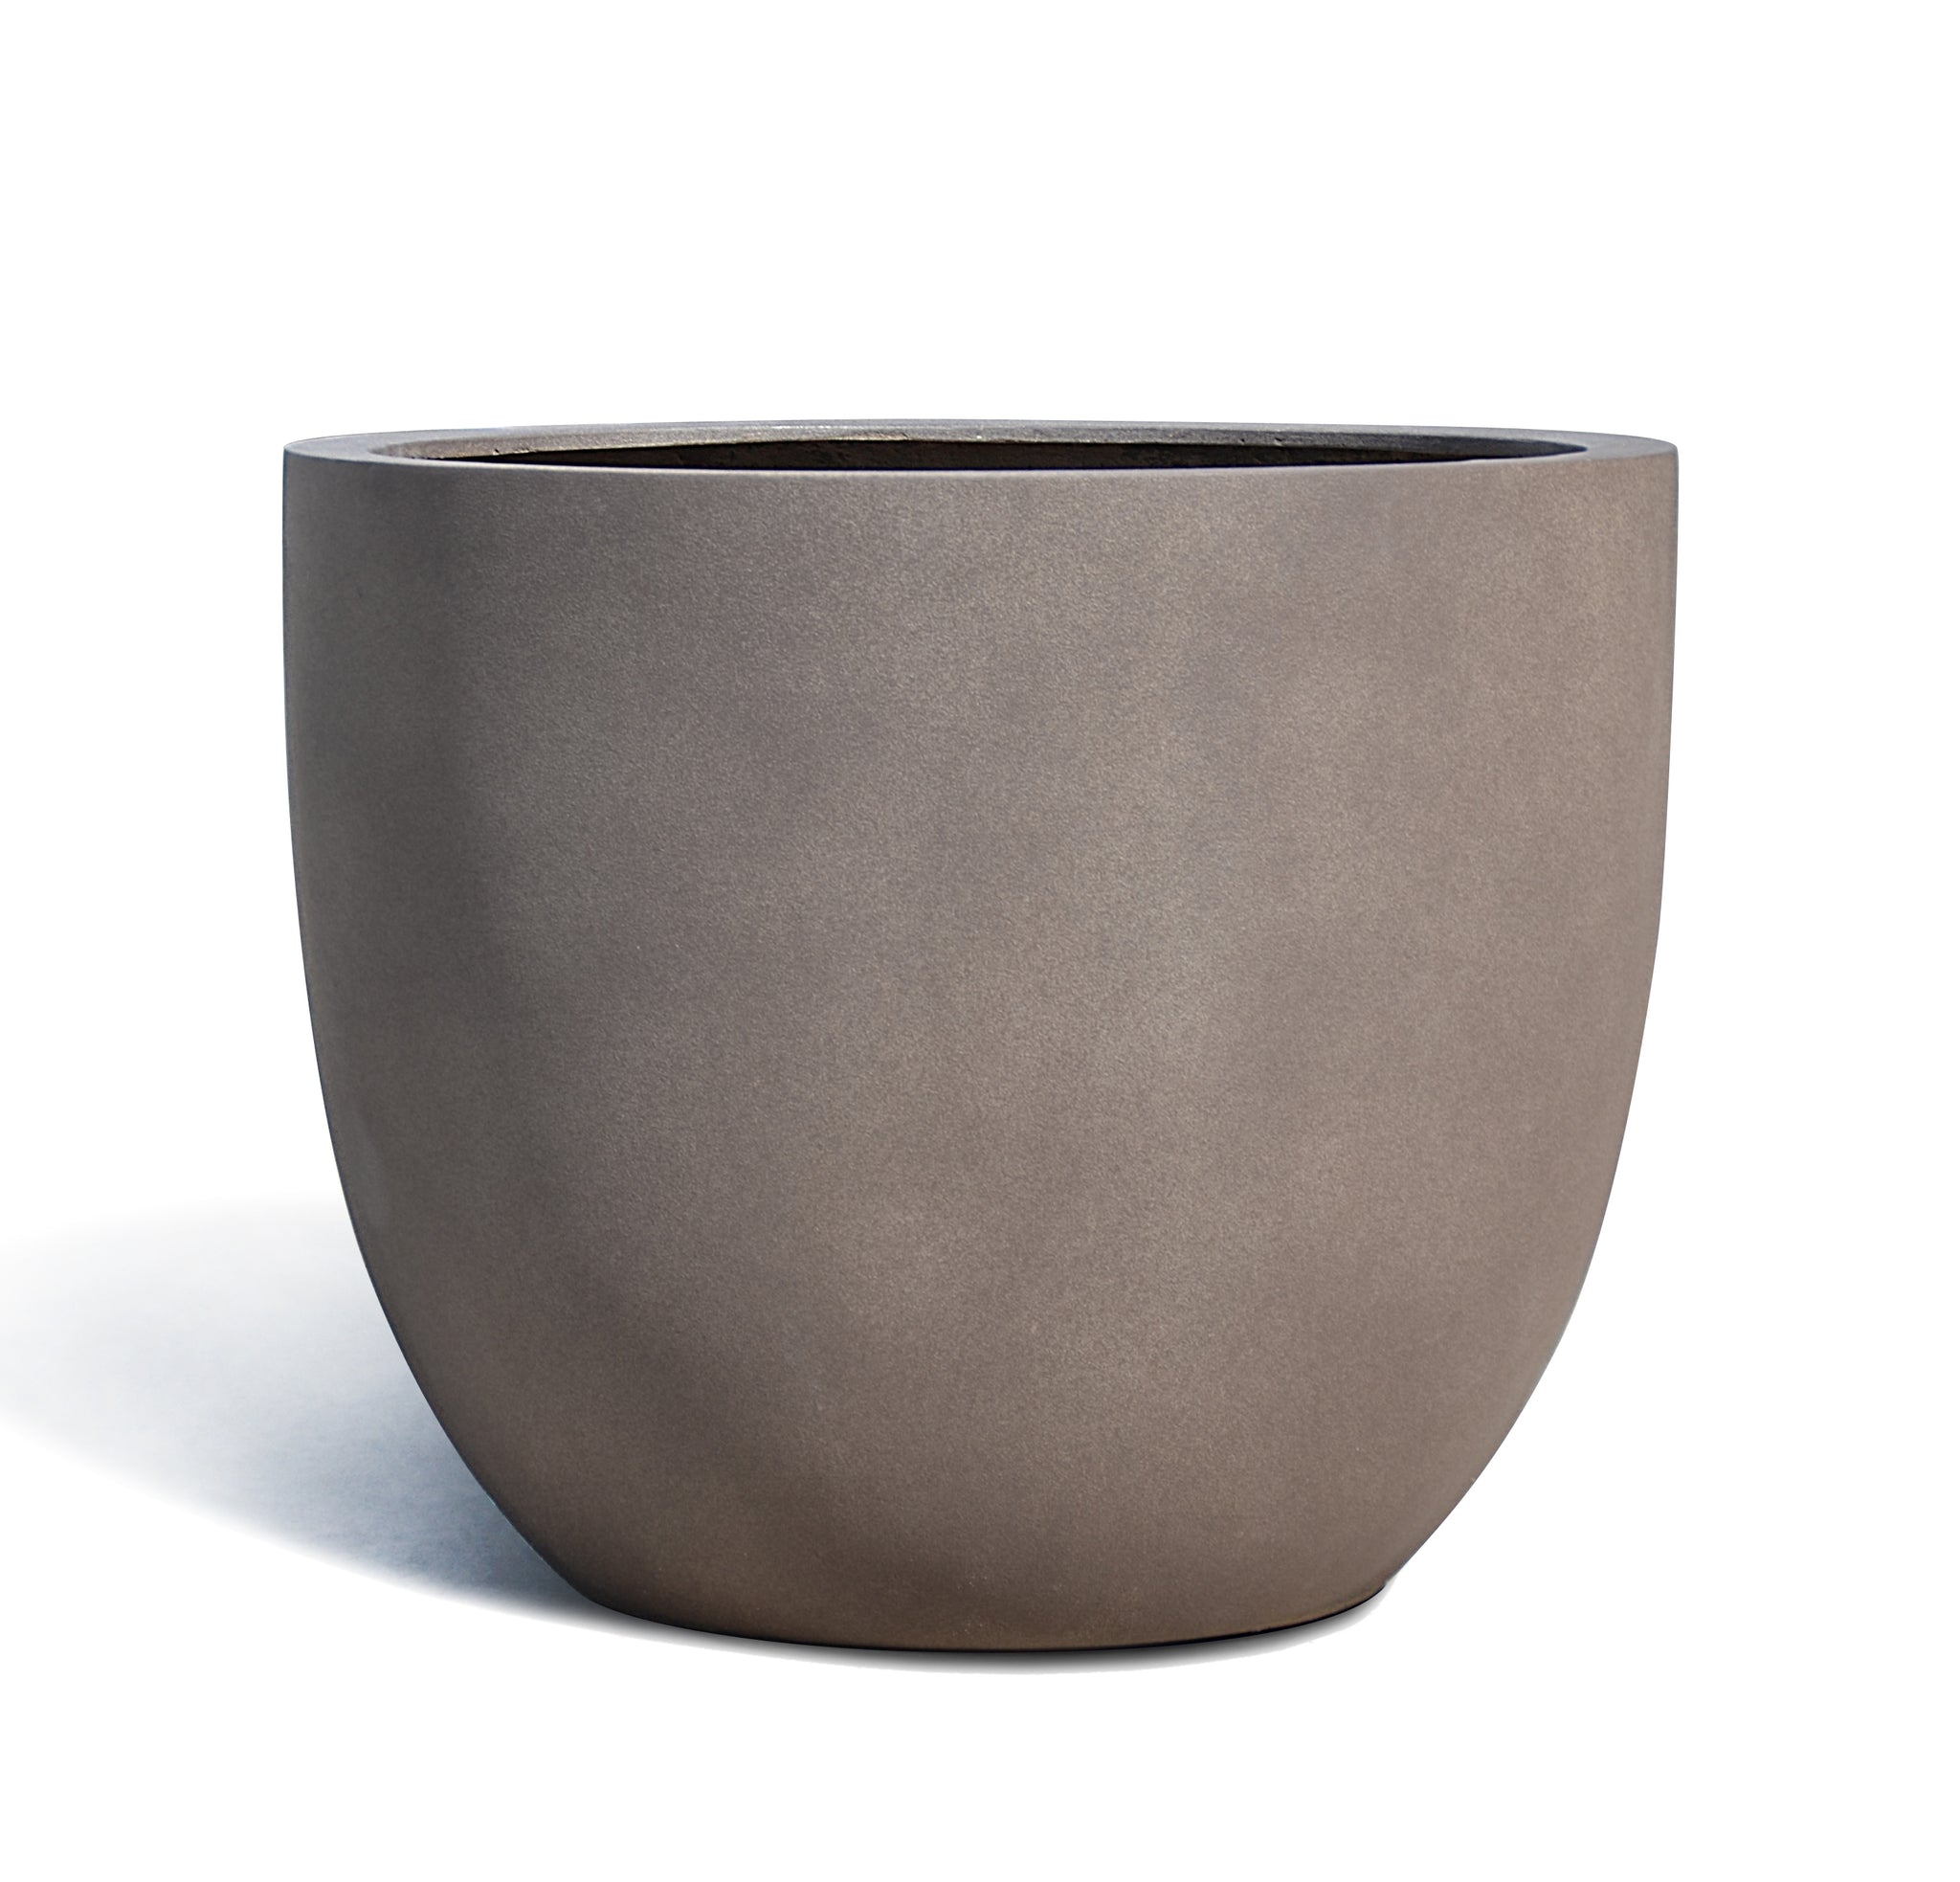 Urban Egg Round Planter Pot